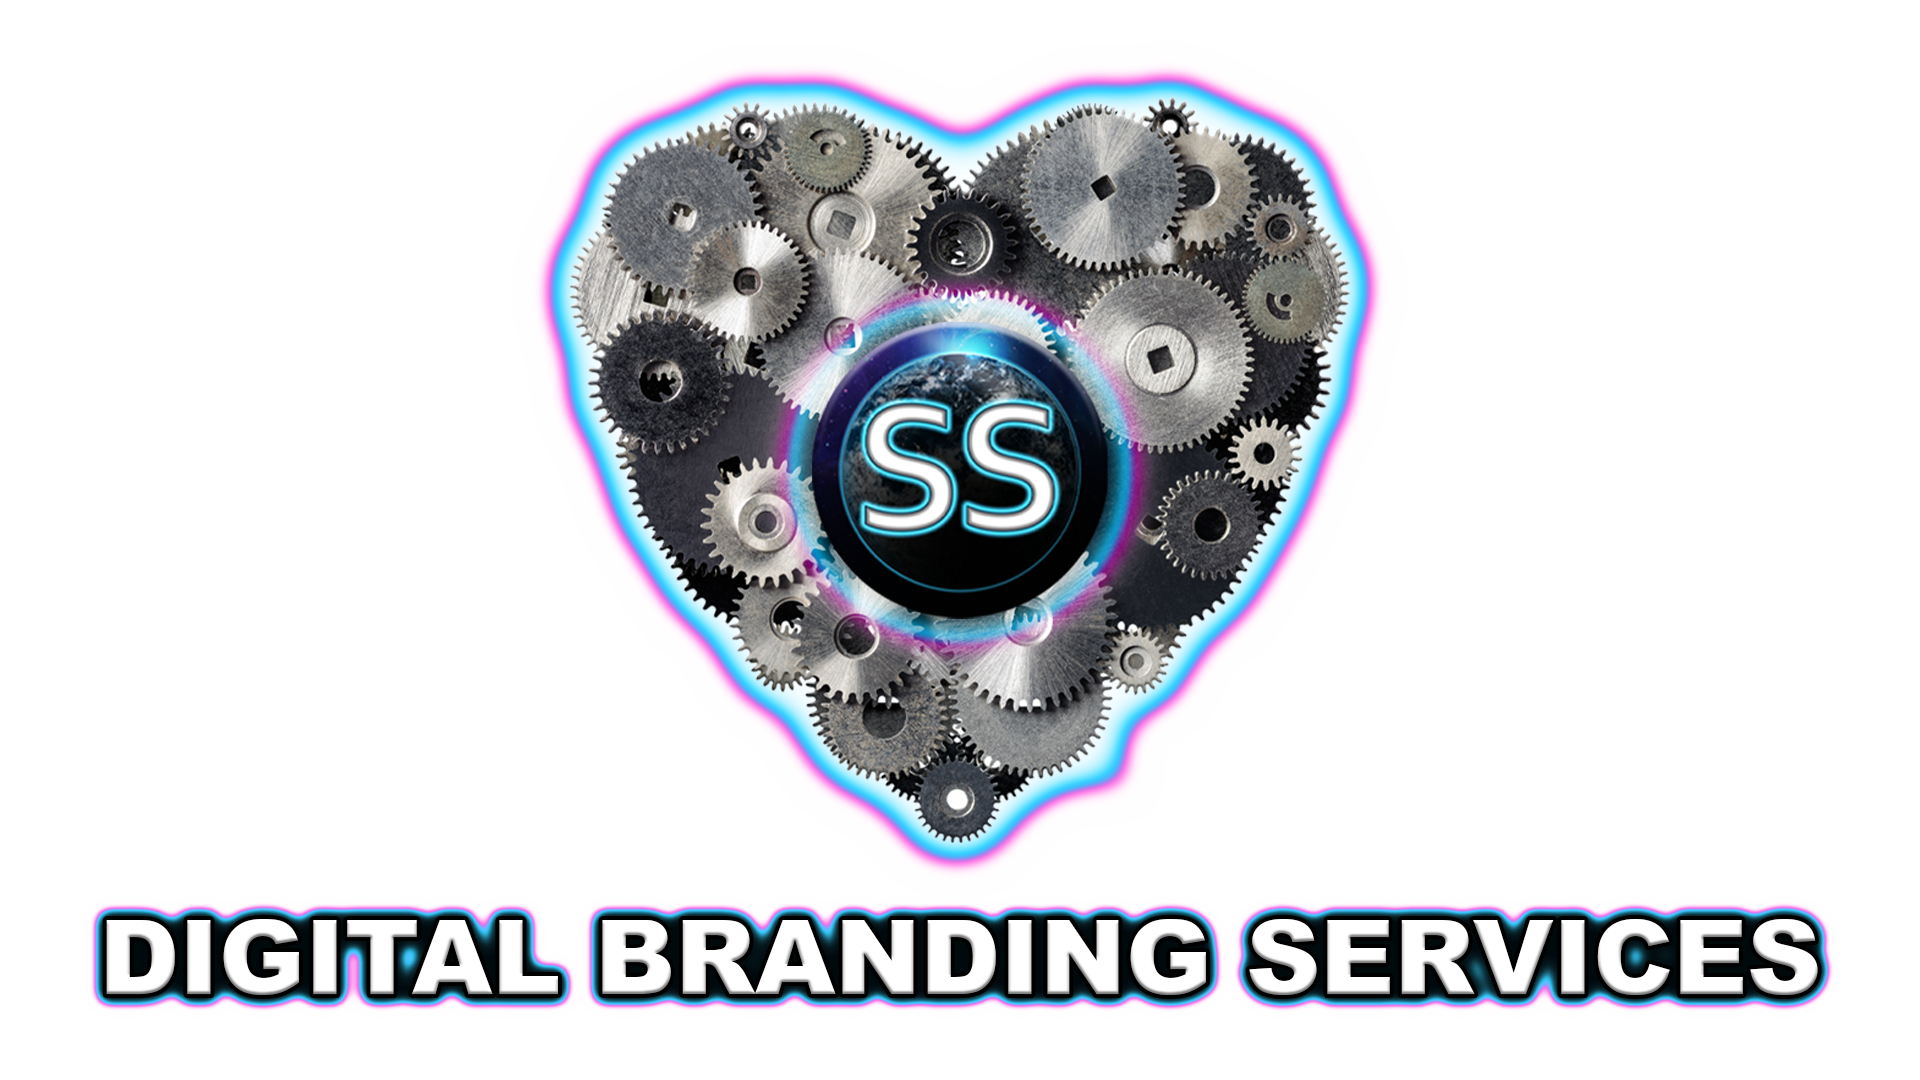 digital branding services at skyshot digital design, website, online marketing, web content, print design, business 1